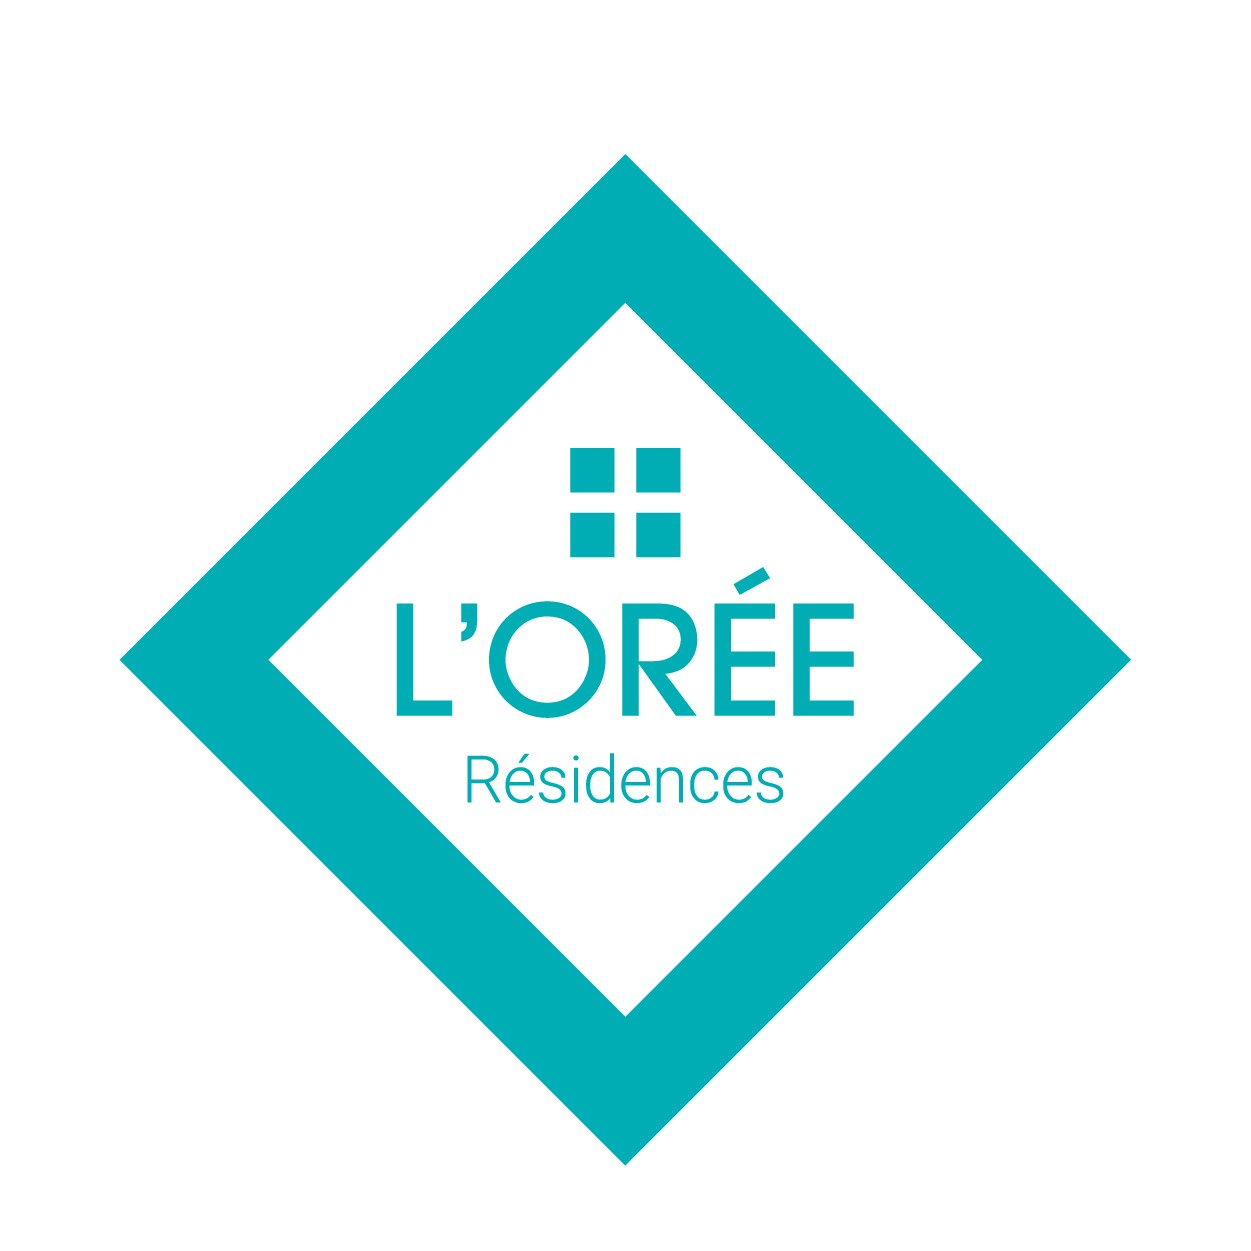 Création logo pour programme immobilier Oree residence - Savoie